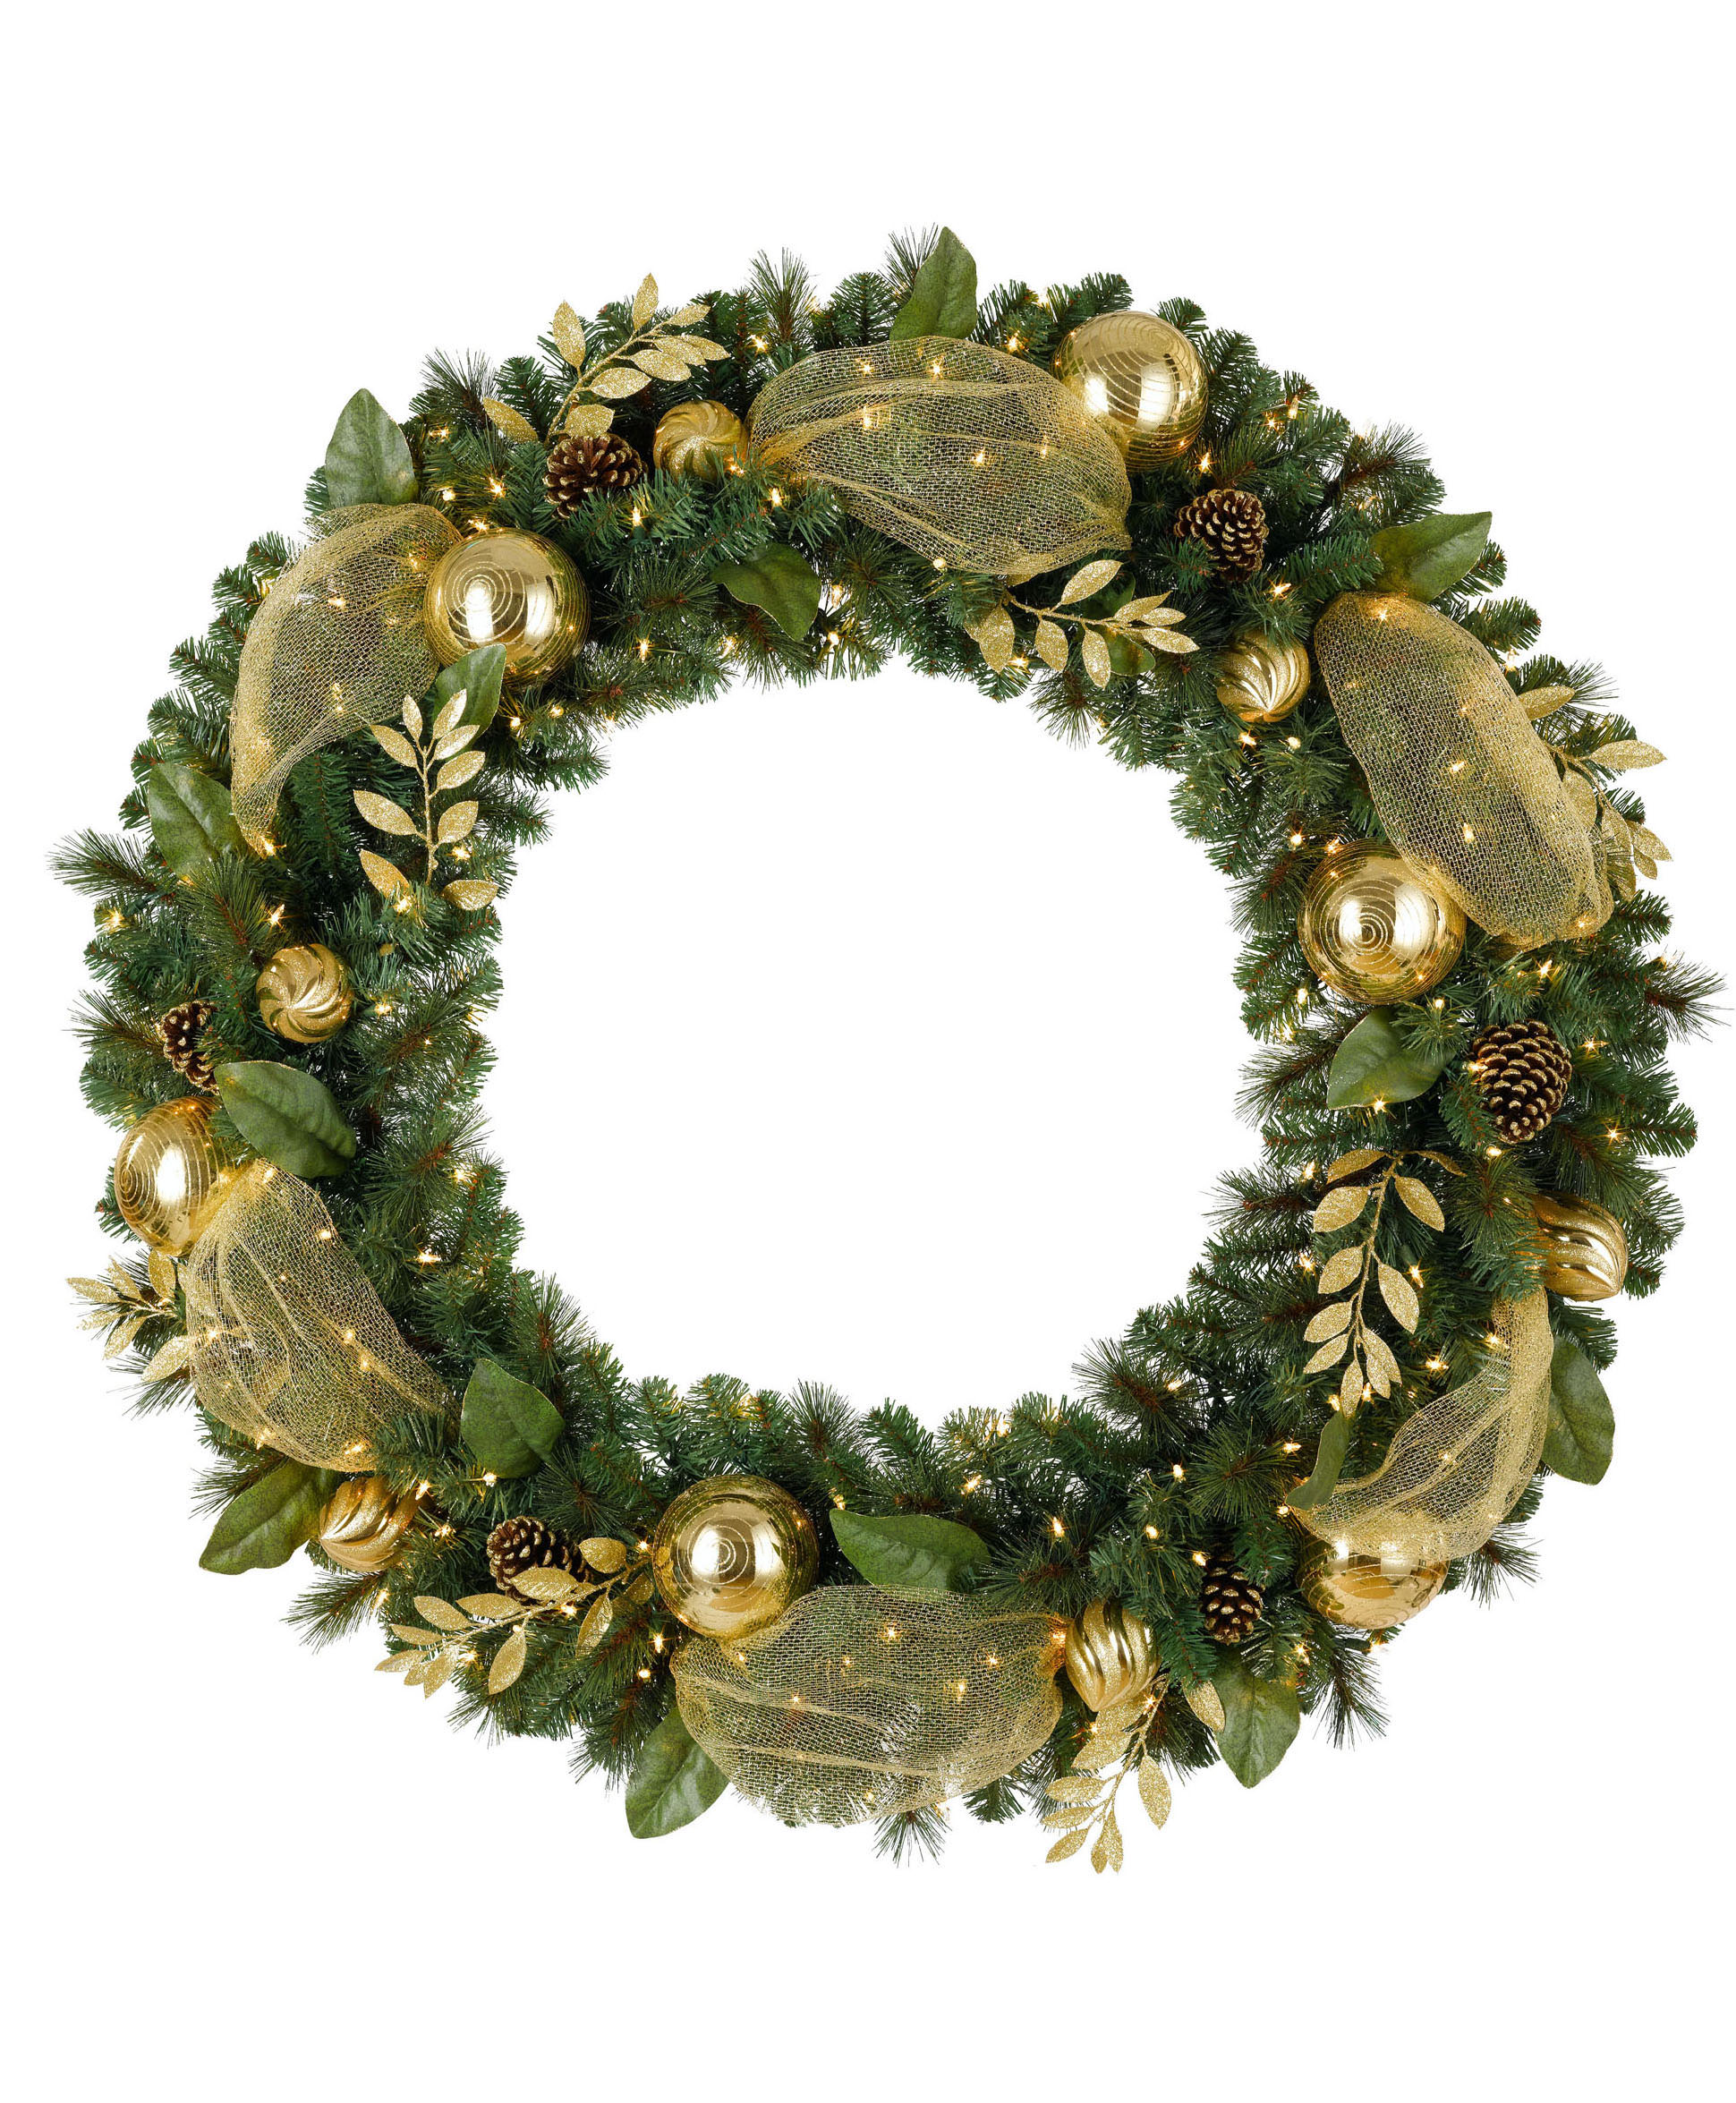 Gold Christmas Wreath.Beautiful Pictures Of Christmas Wreaths Homesfeed